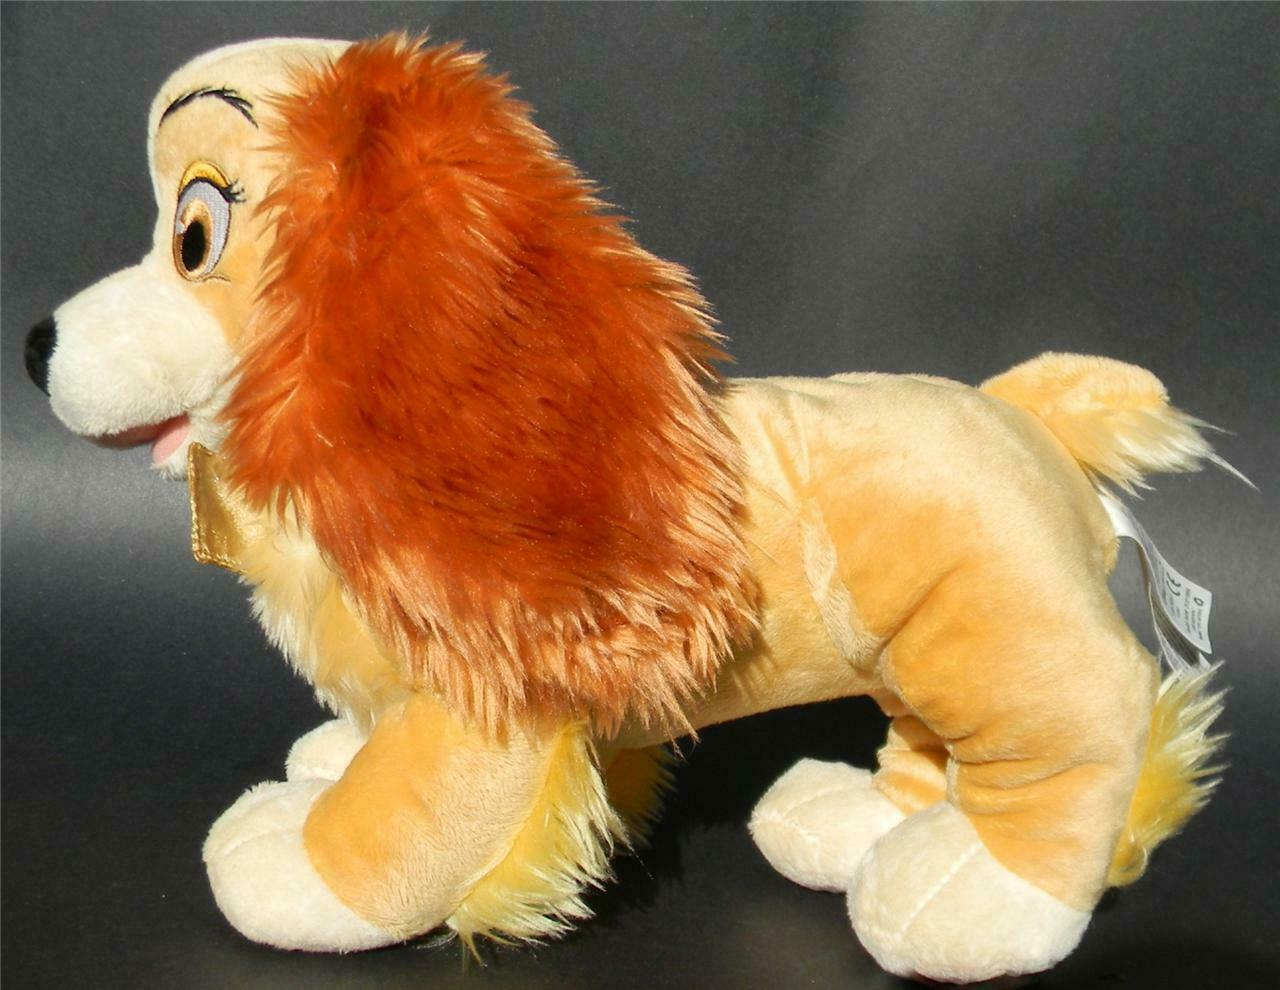 Primary image for Disney Store Plush Stuffed Lady Tramp Stuffed Animal Dog Cocker Spaniel NEW